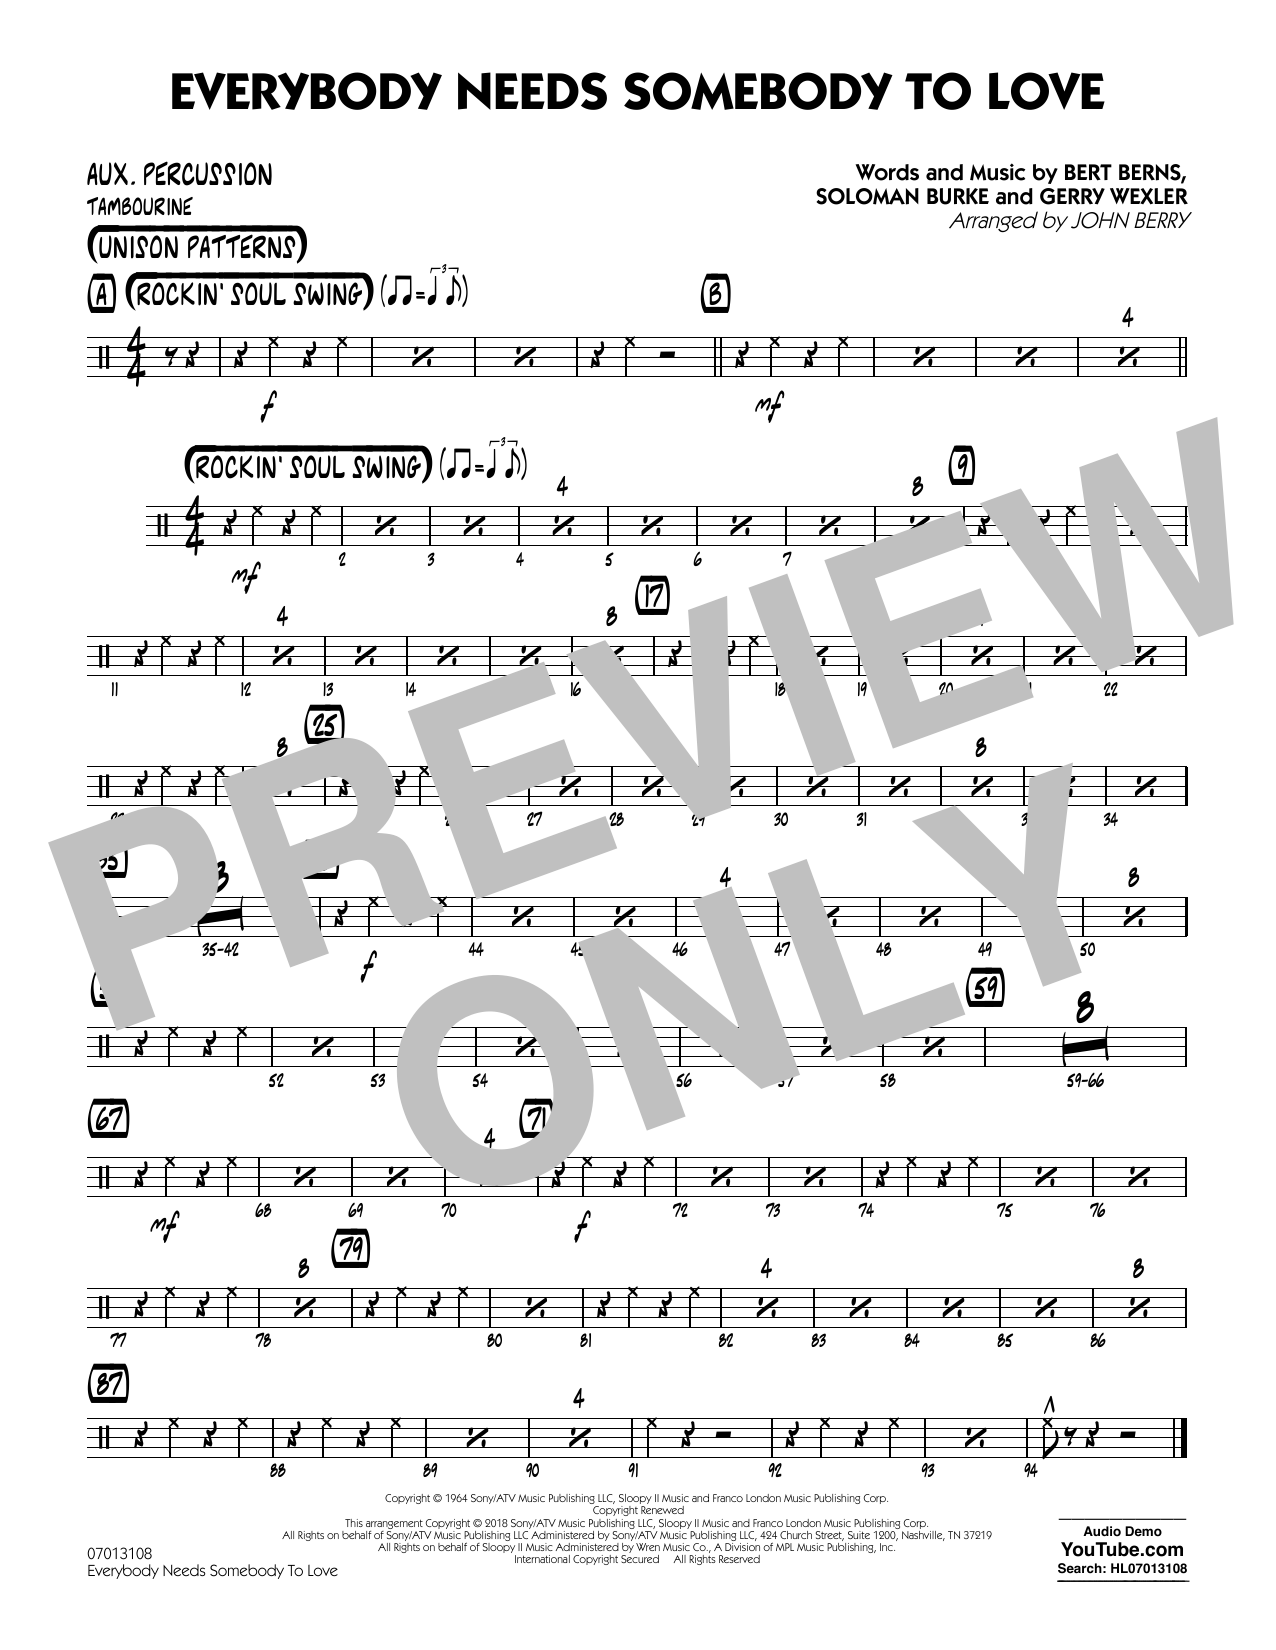 Everybody Needs Somebody to Love - Aux Percussion Partituras Digitales